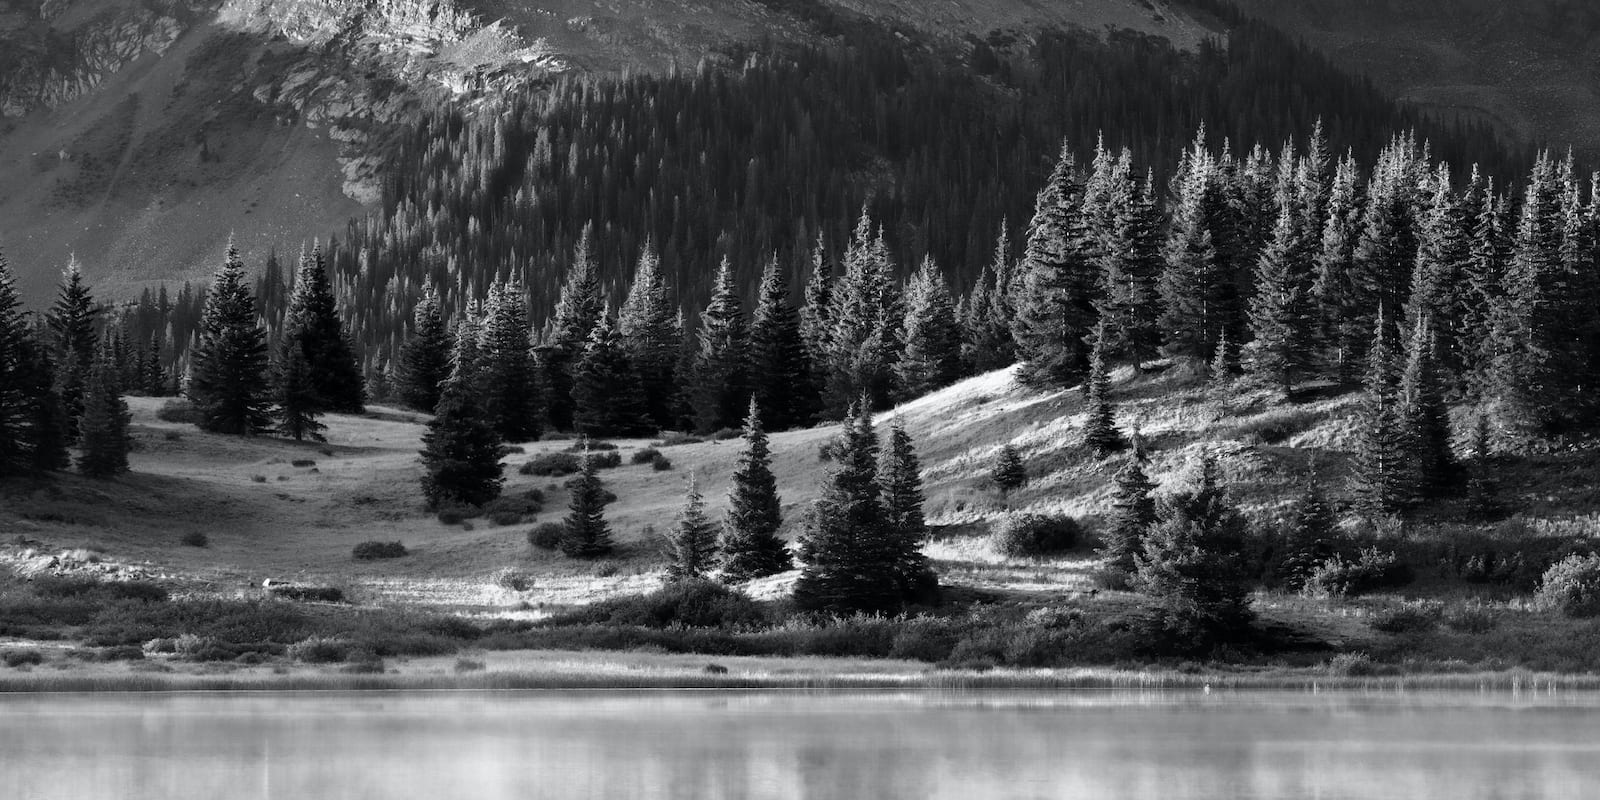 Little Molas Lake Still Black and White Image